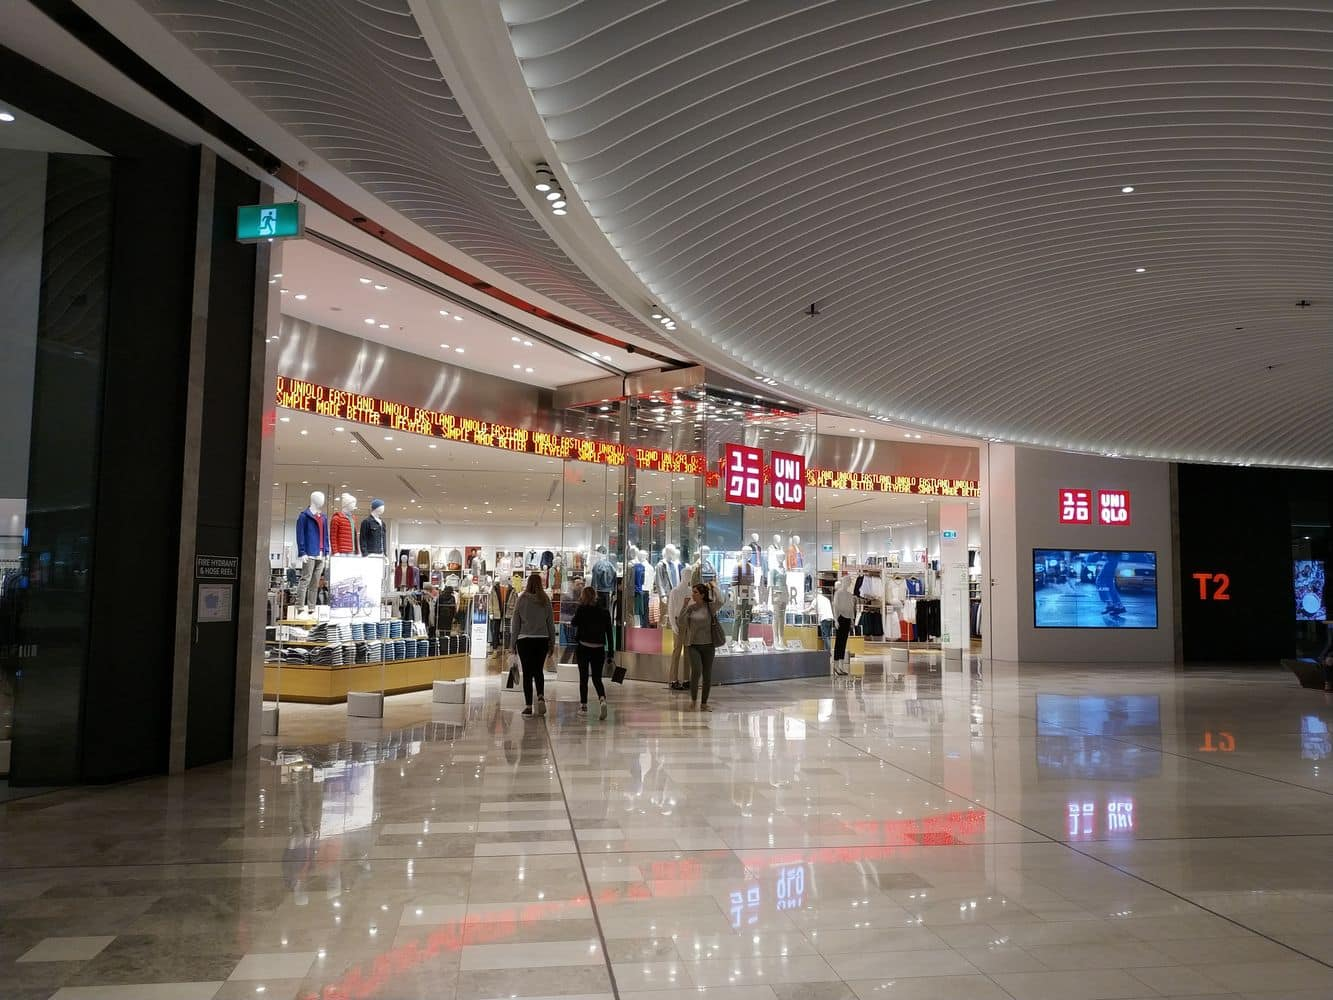 Eastland shoppping centre 12